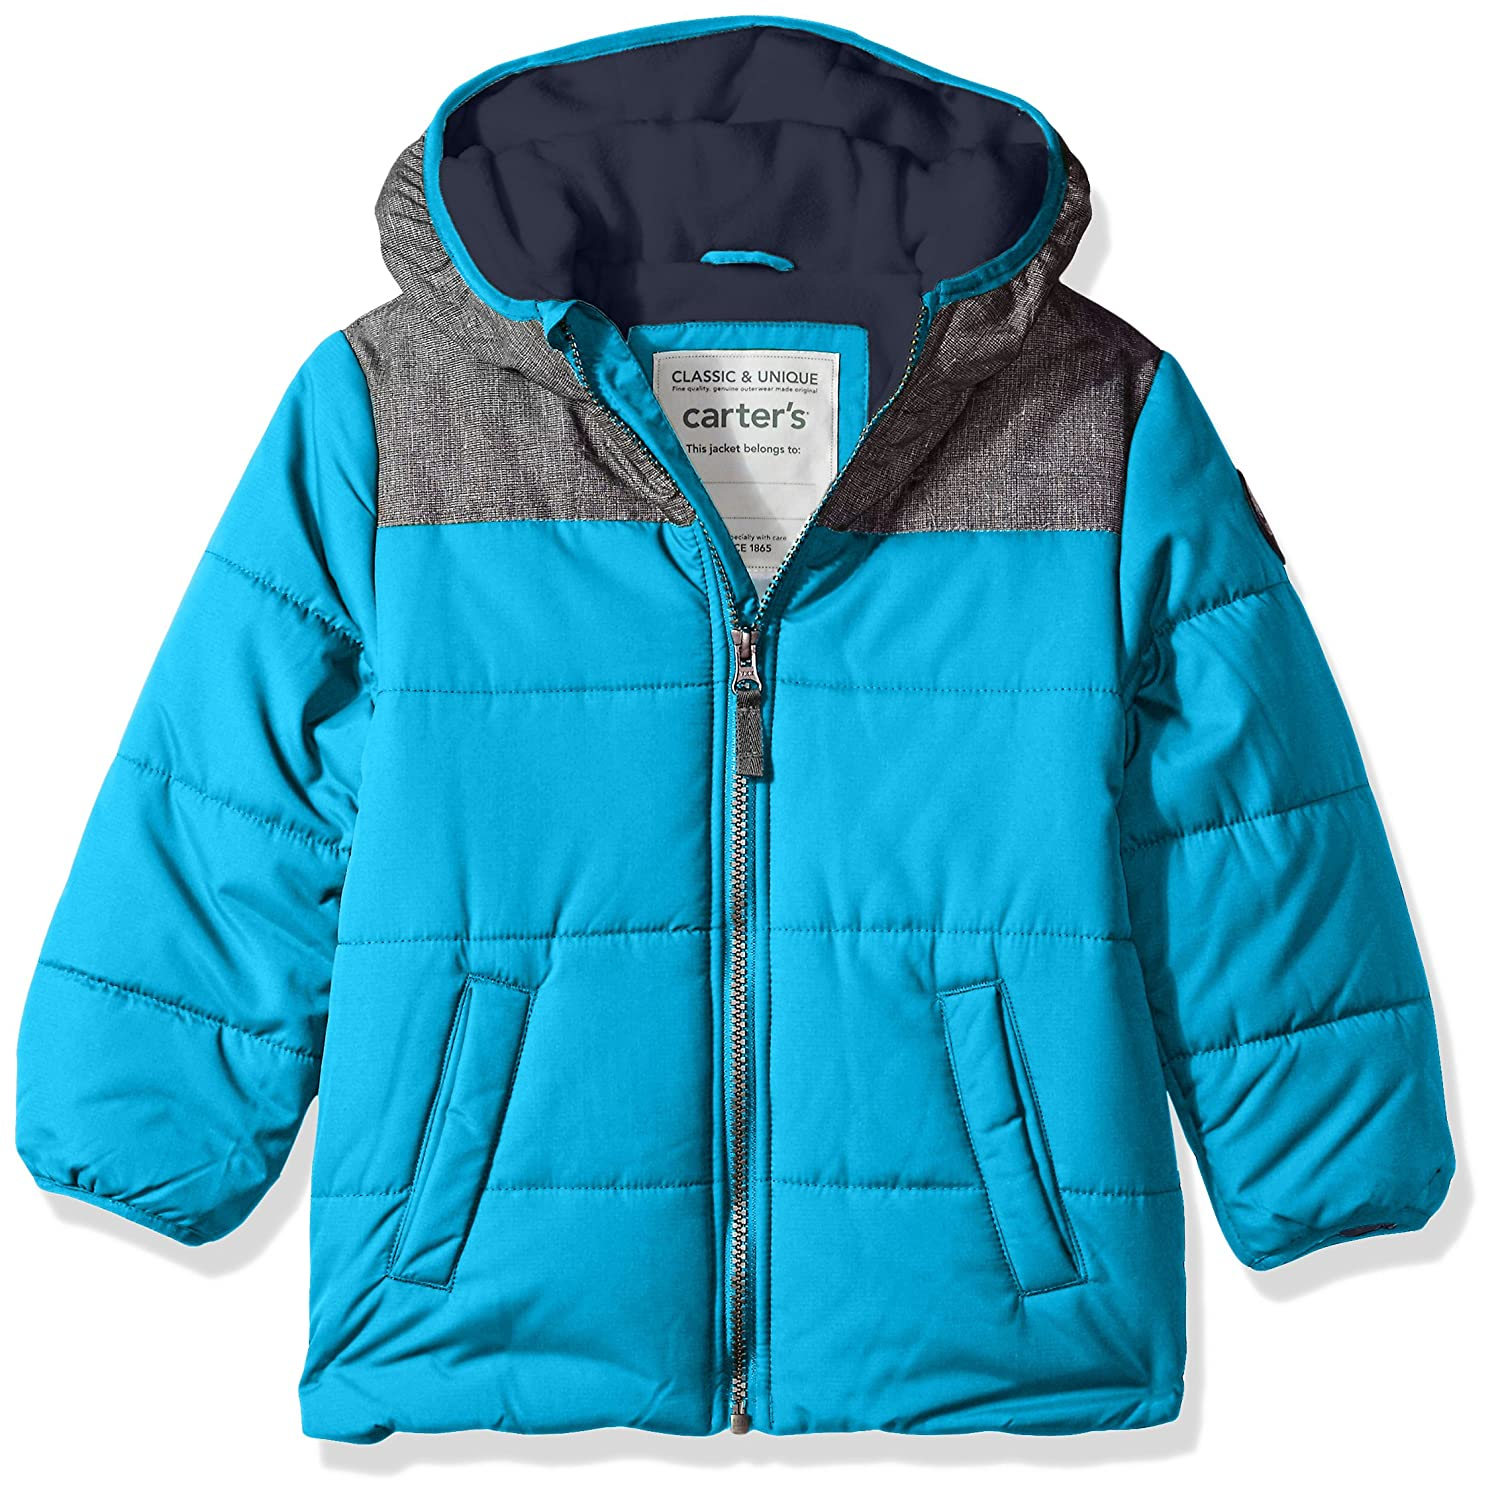 Carter's Boys' Little Puffer Jacket Coat with Soft Fabric Yolk Teal/Navy 5/6 Carter' s C217E12